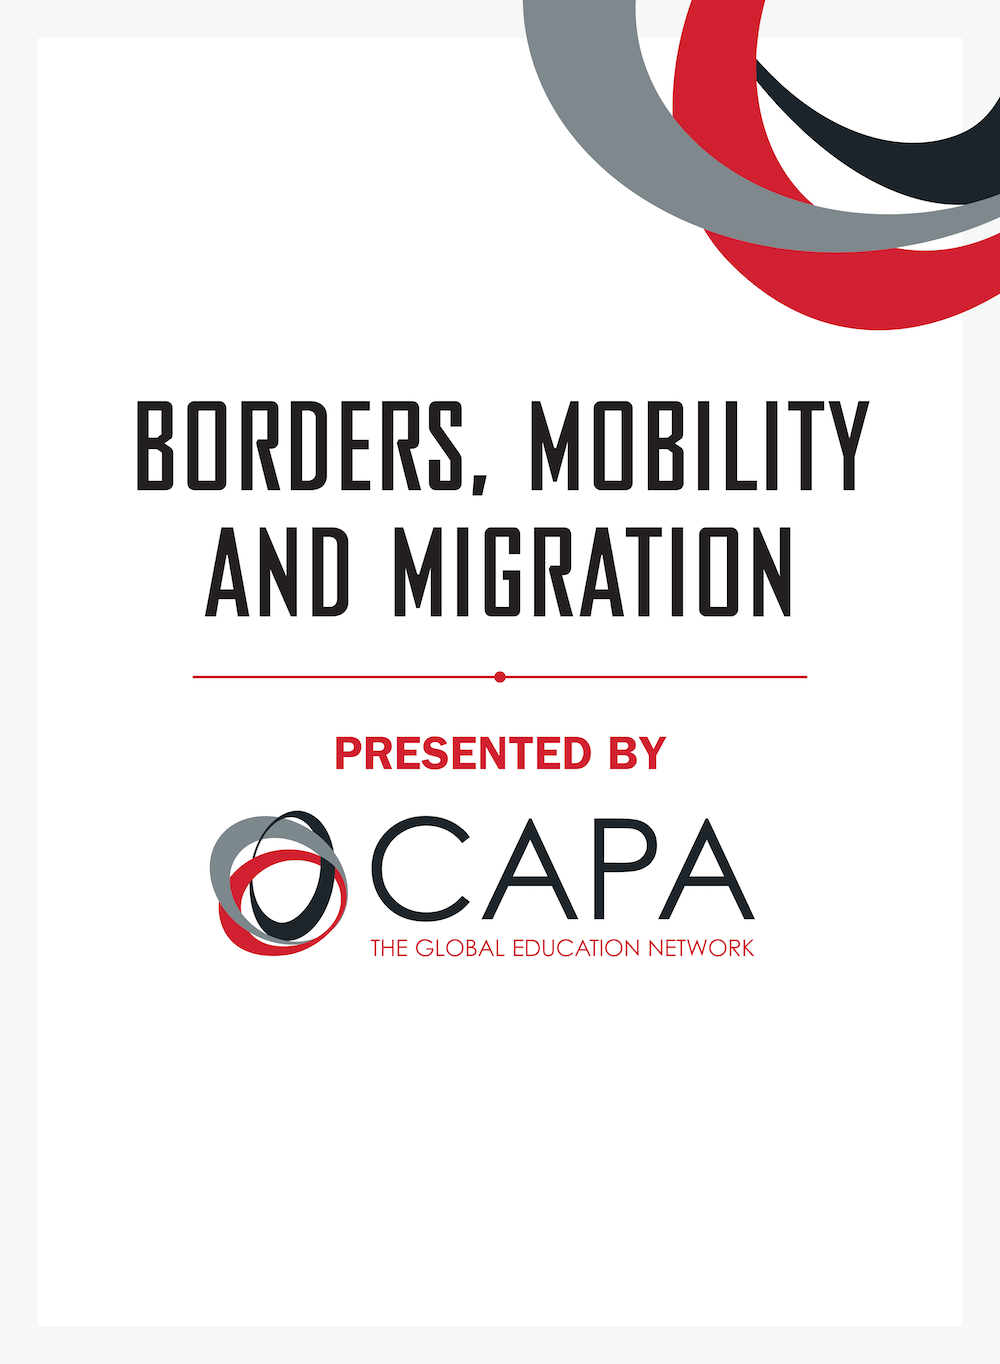 CAPA_Borders, Mobility and Migration_Forum-1_GeneralSymposium